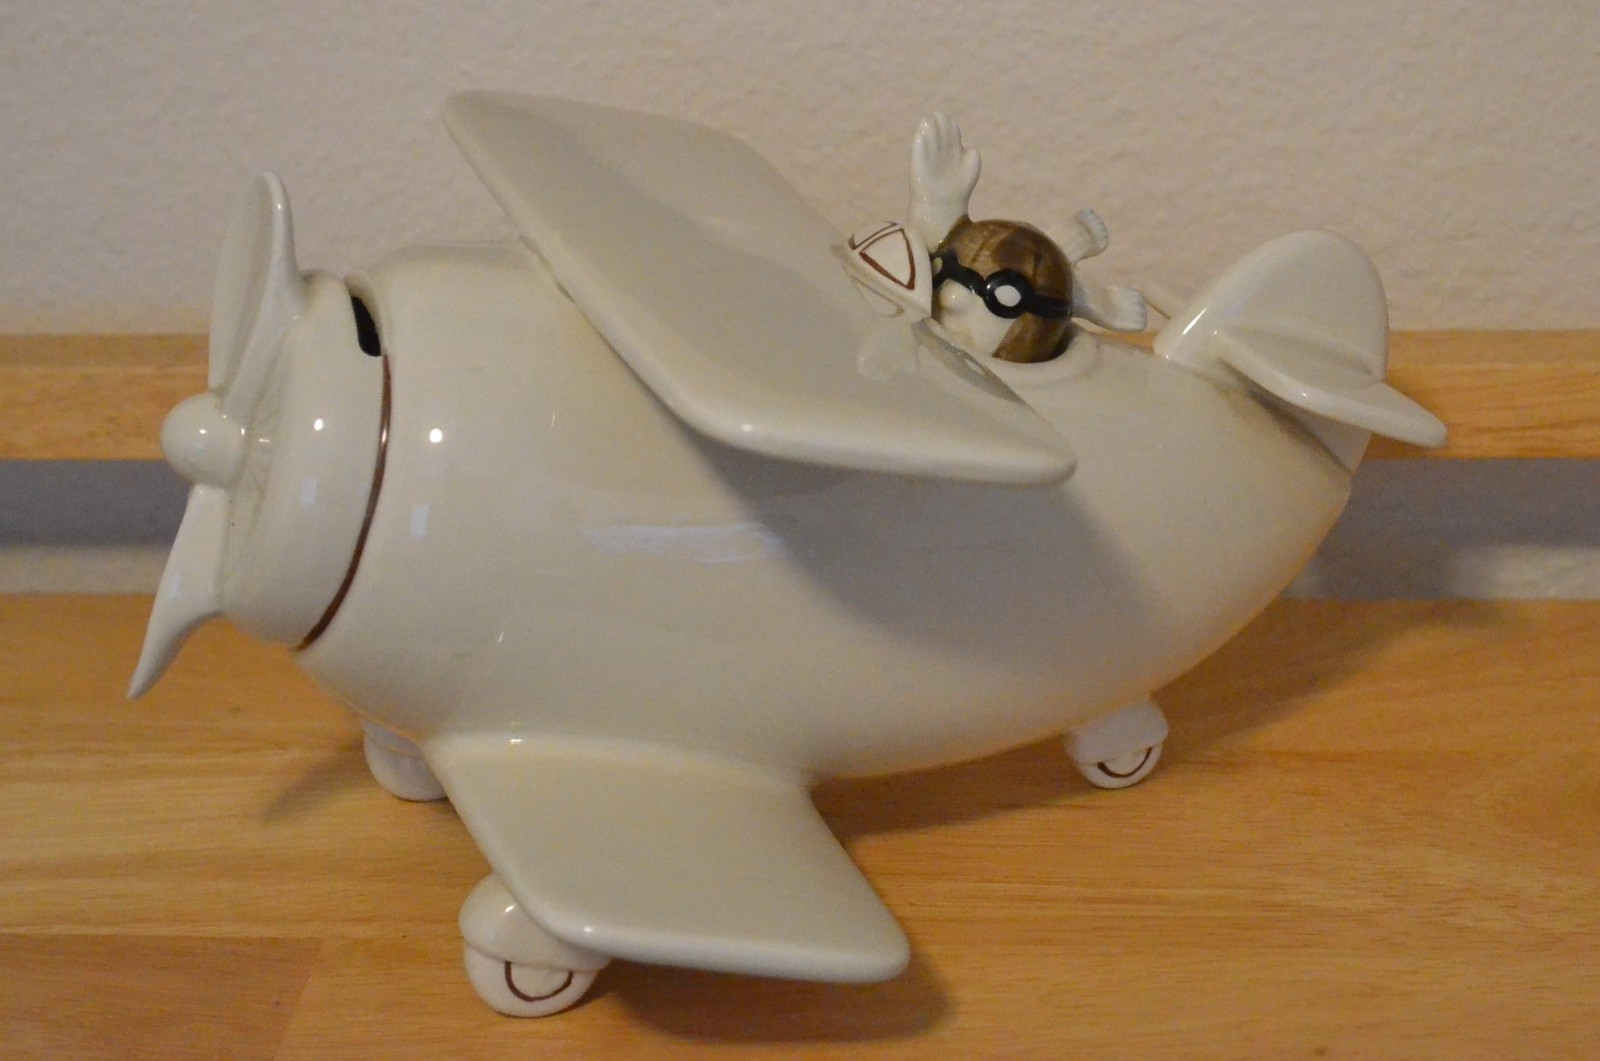 fitz u0026 floyd airplane bi plane ceramic and 50 similar items